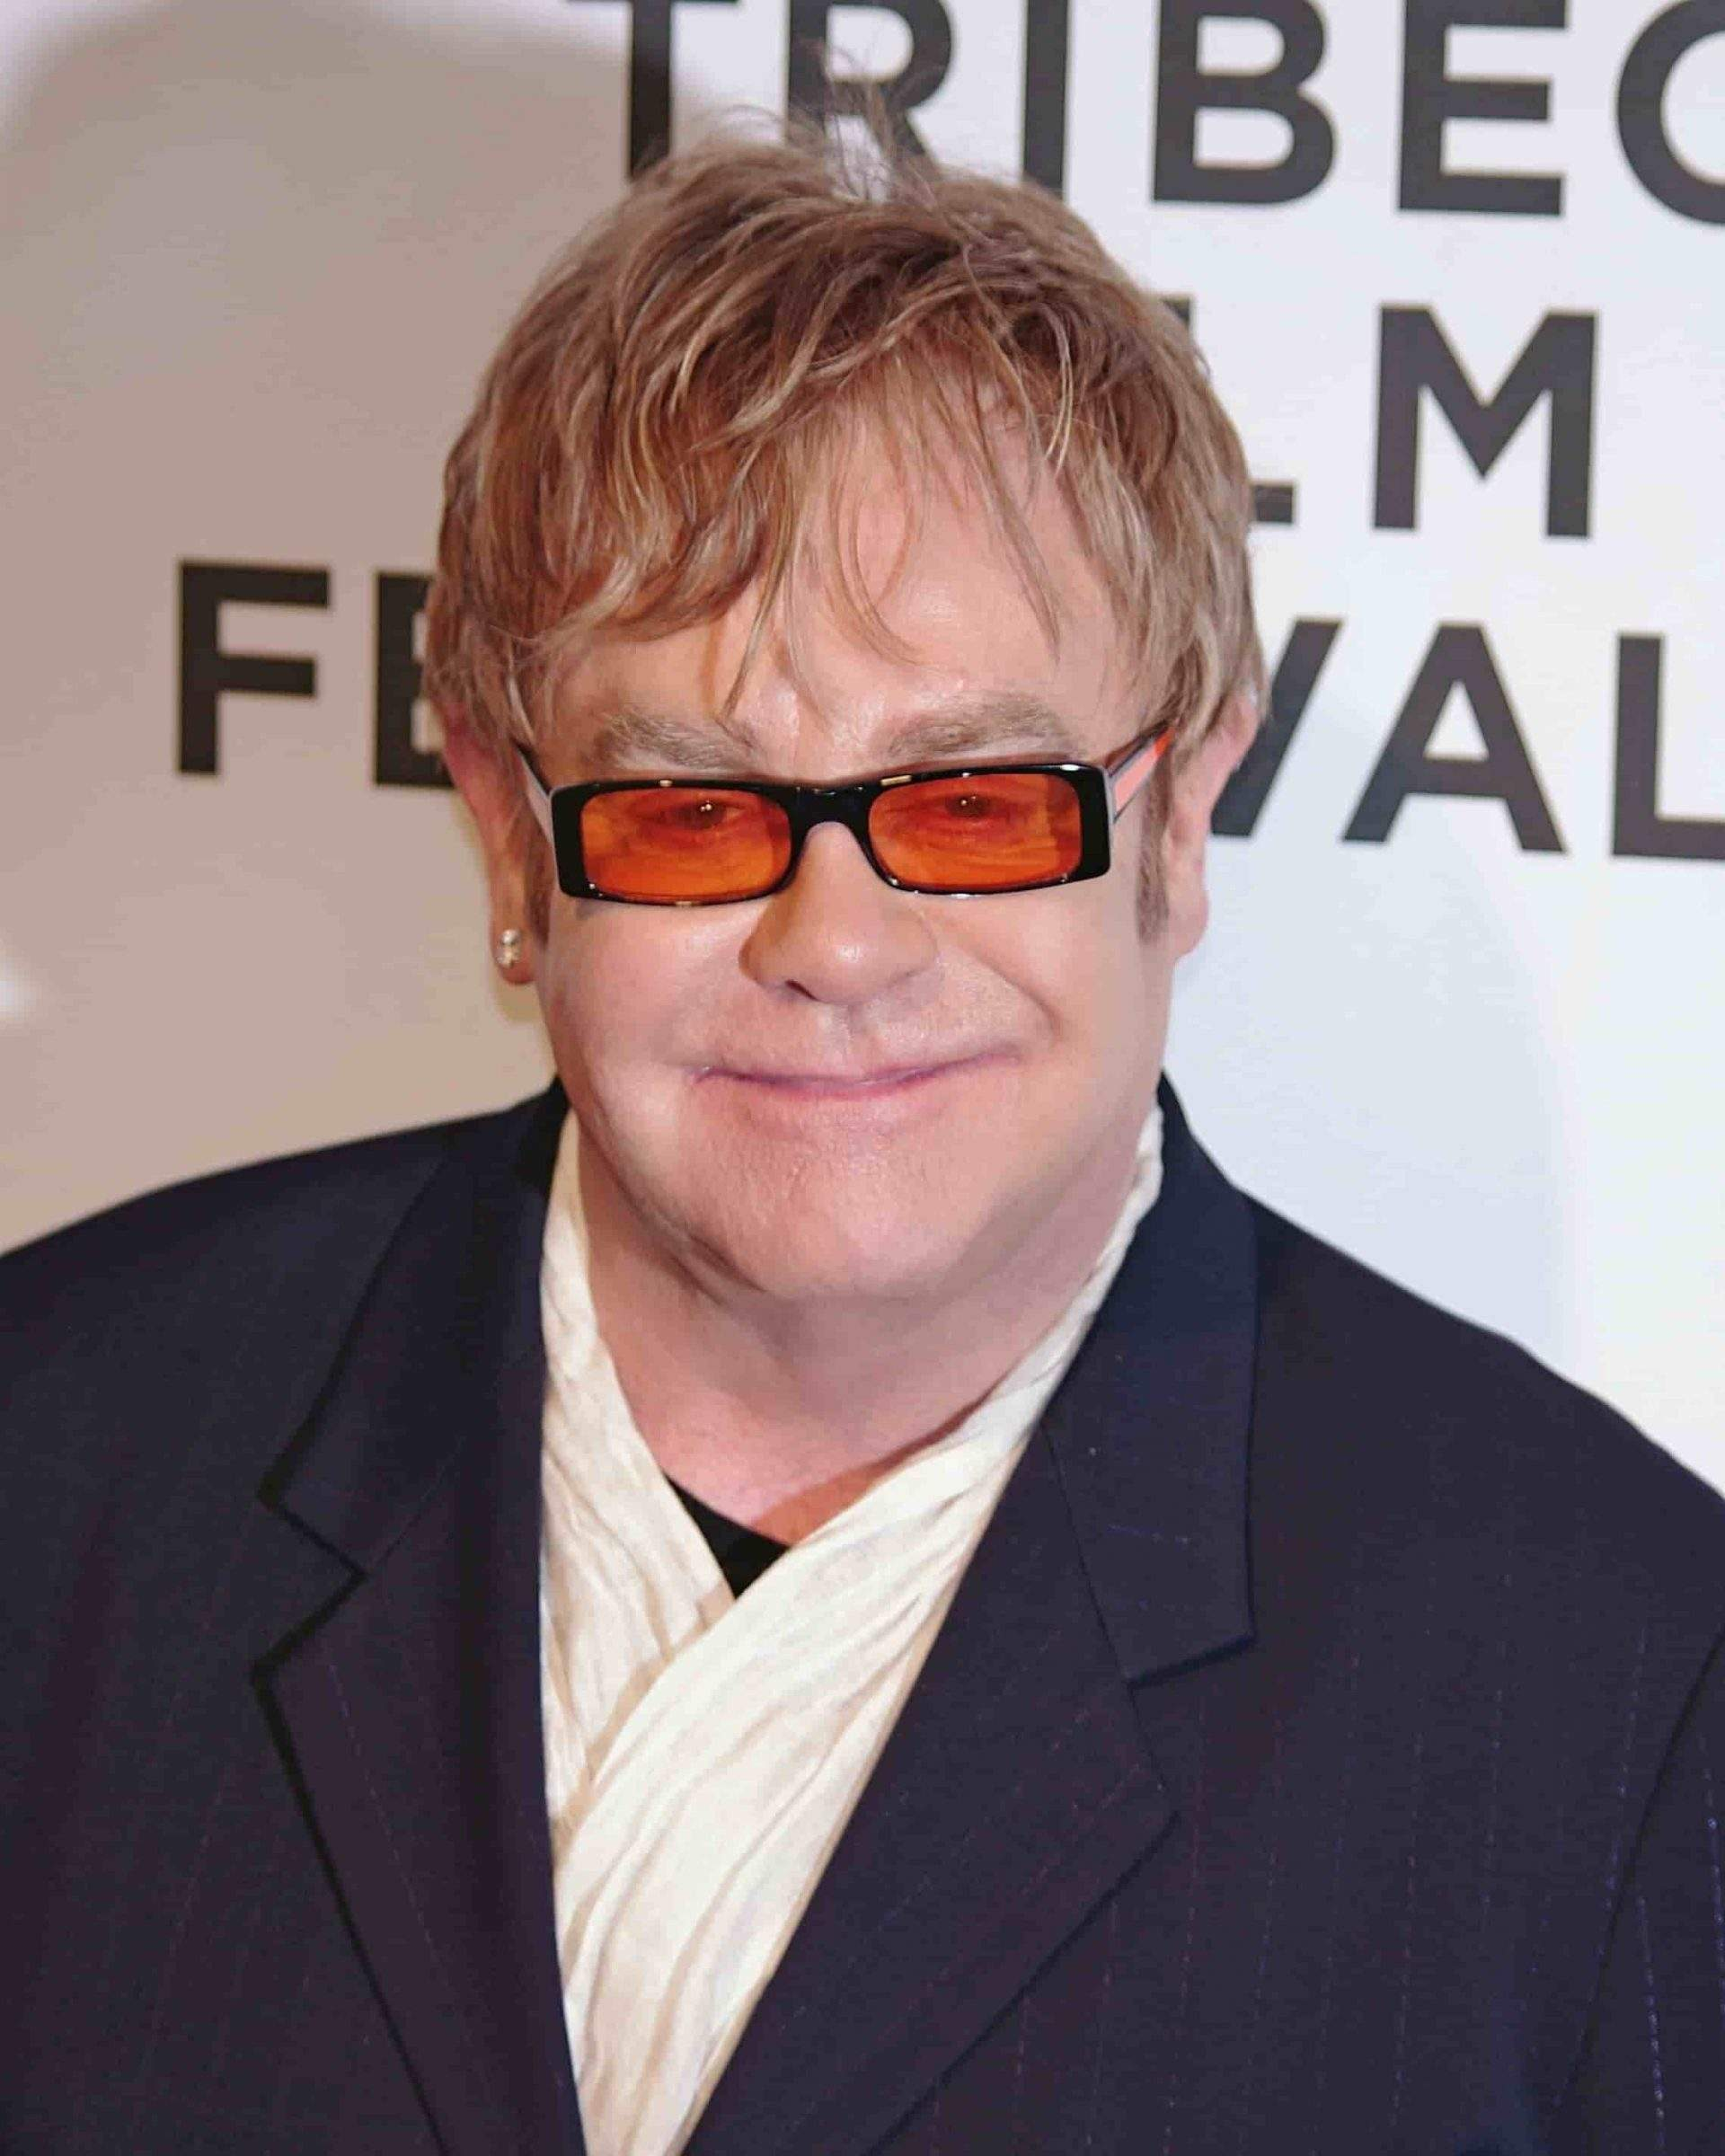 Elton John Celebrates Going 29 Years Sober